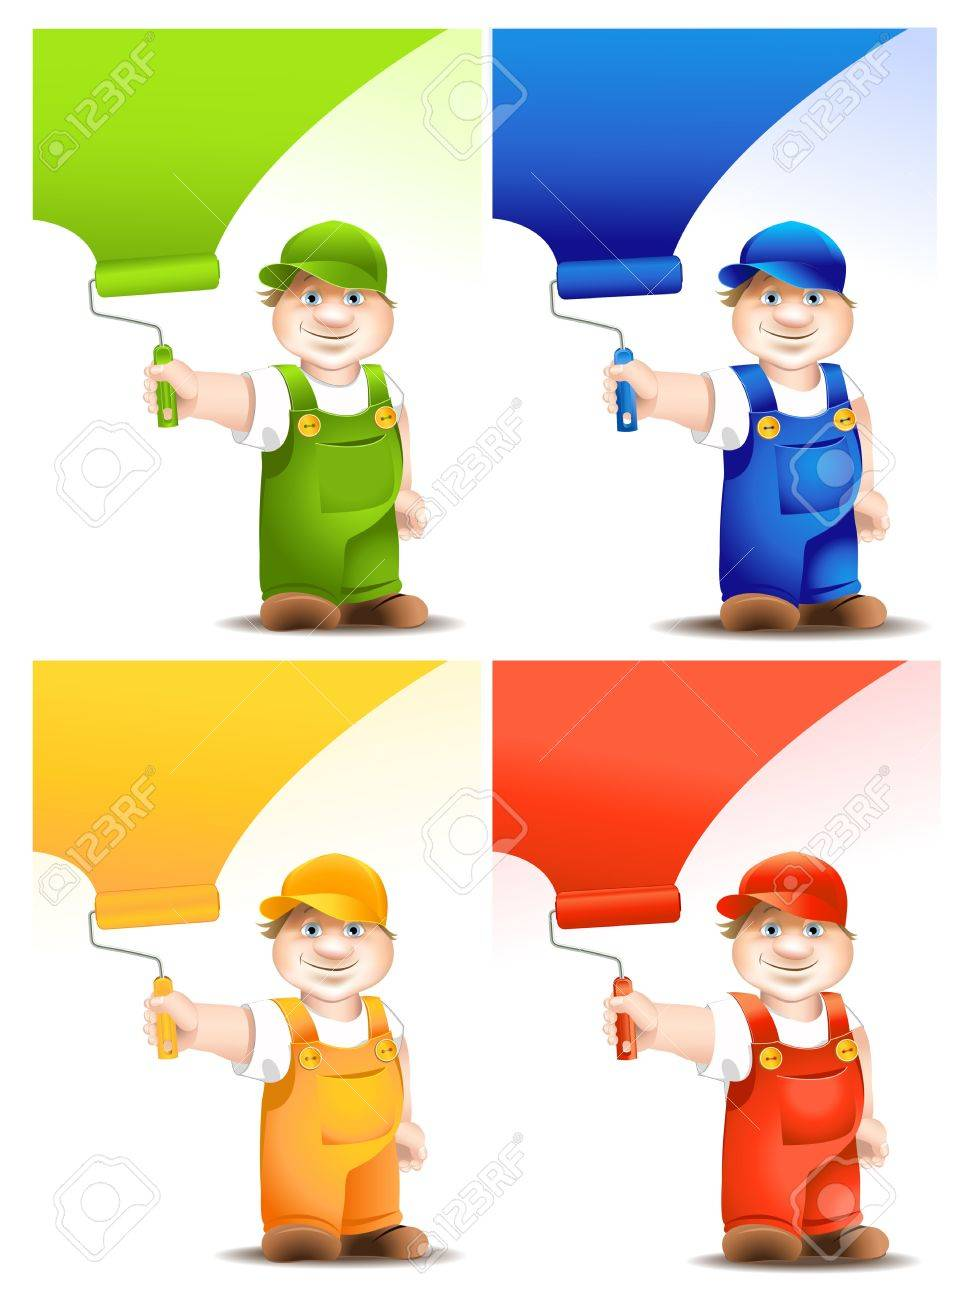 worker cartoon with platen dyes surface - set - 12480568